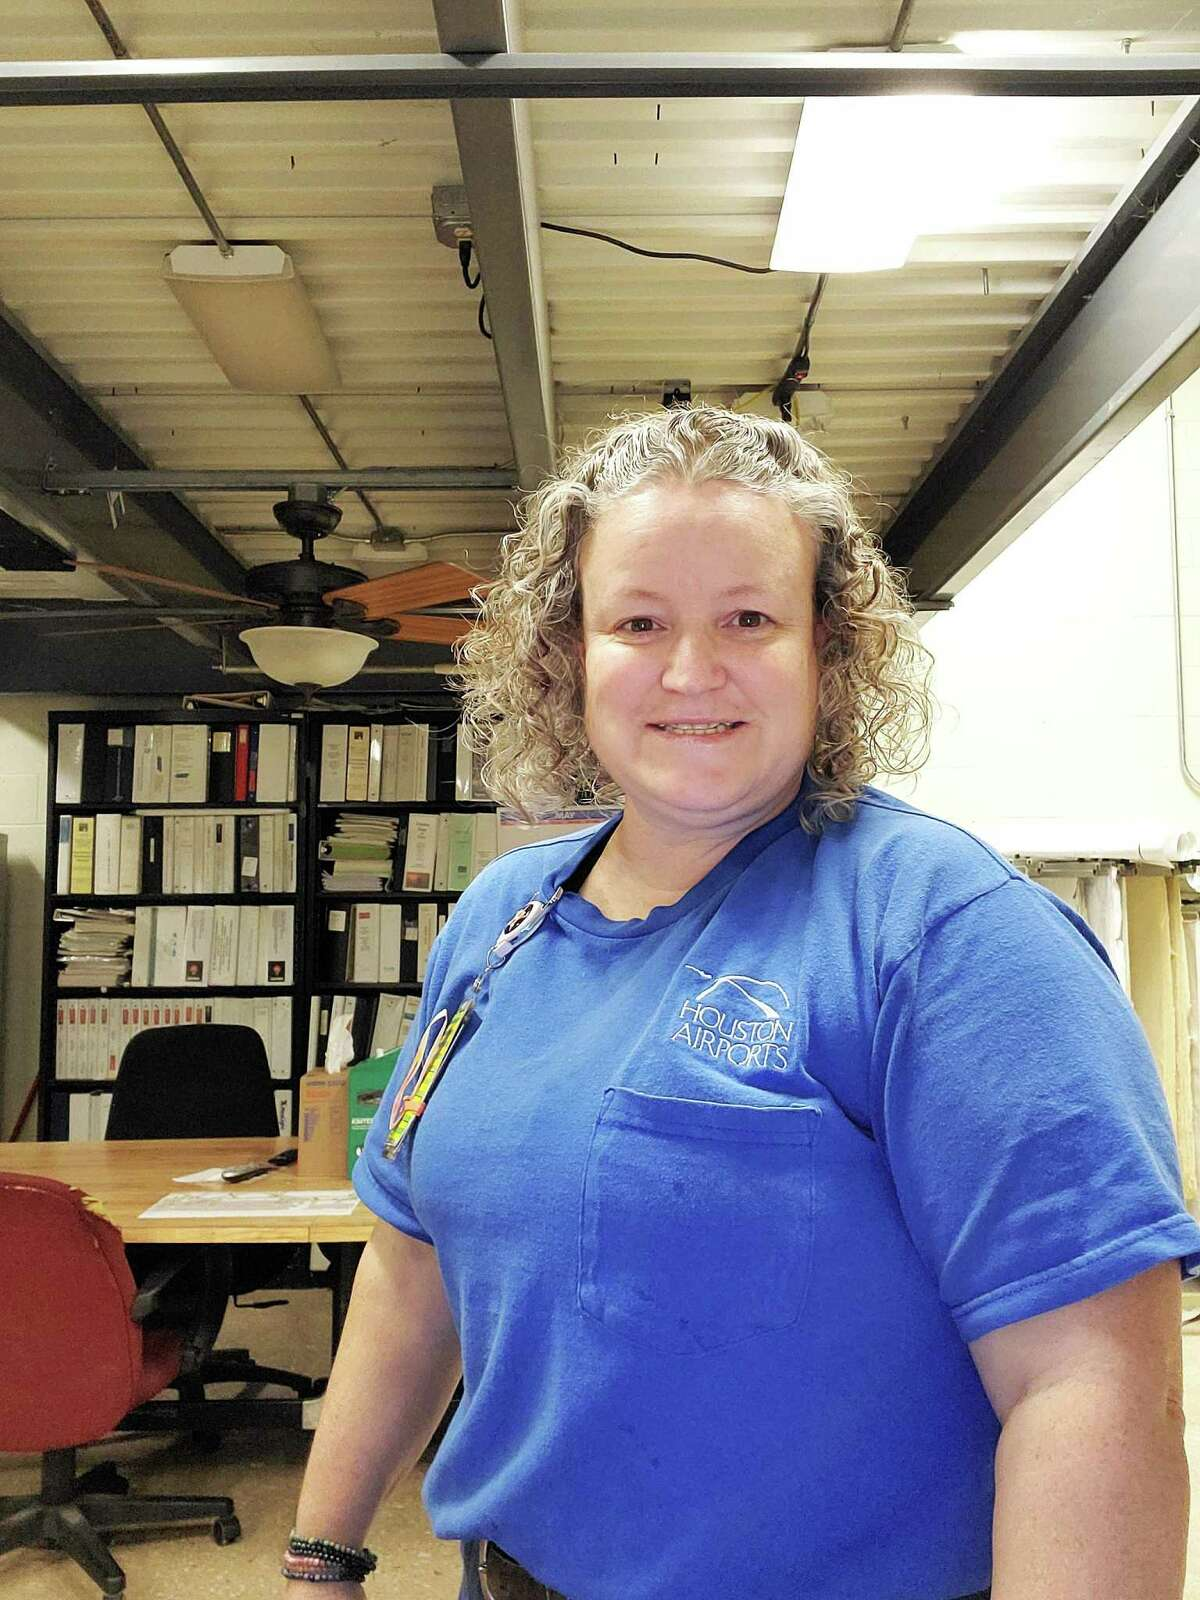 Bobbie Taylor completed her associate degree in architecture at the Lone Star College-North Harris with the hopes of moving up in her job now with a degree in her hand. She accomplished the task while still holding down a full-time job and working a rotating shift.